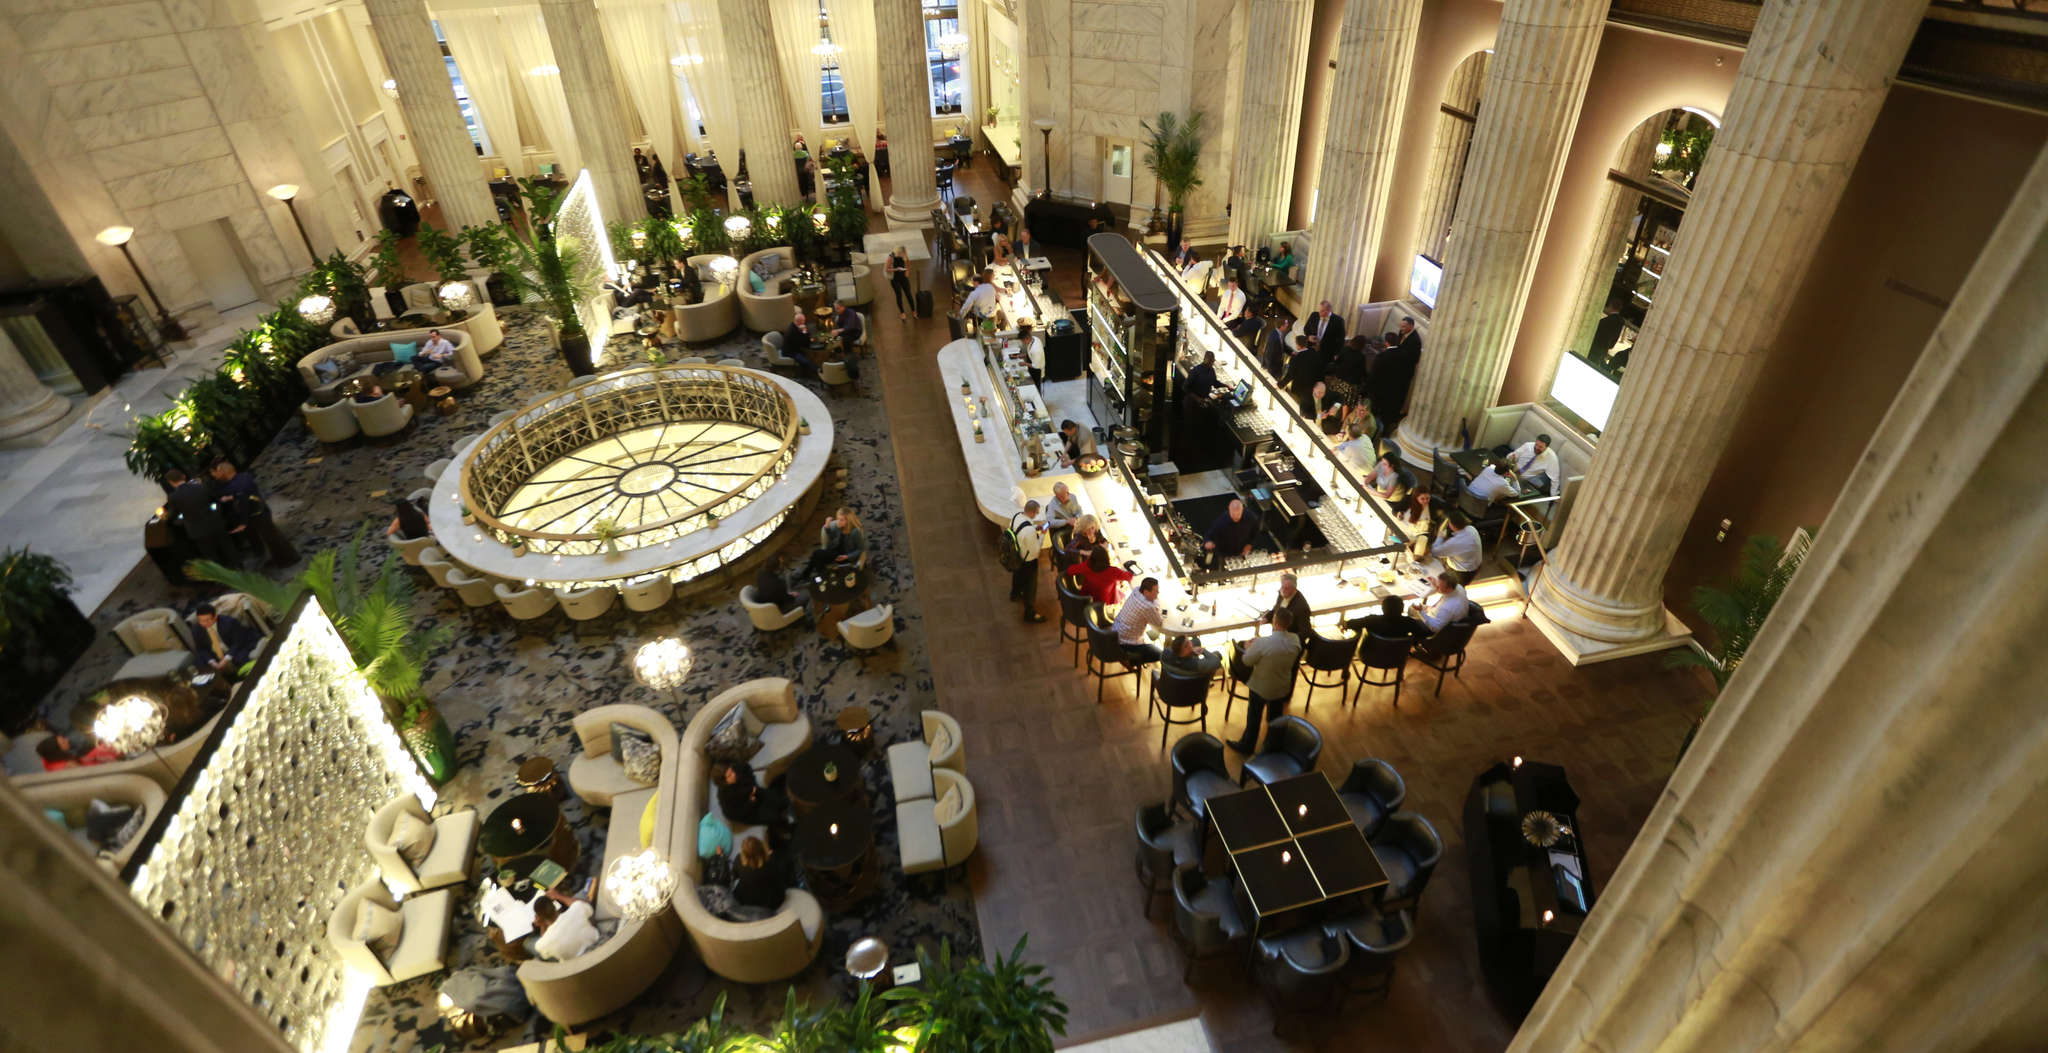 Aqimero sits under the soaring 142-foot dome of the old Girard Bank building that is now the Ritz-Carlton´s lobby.